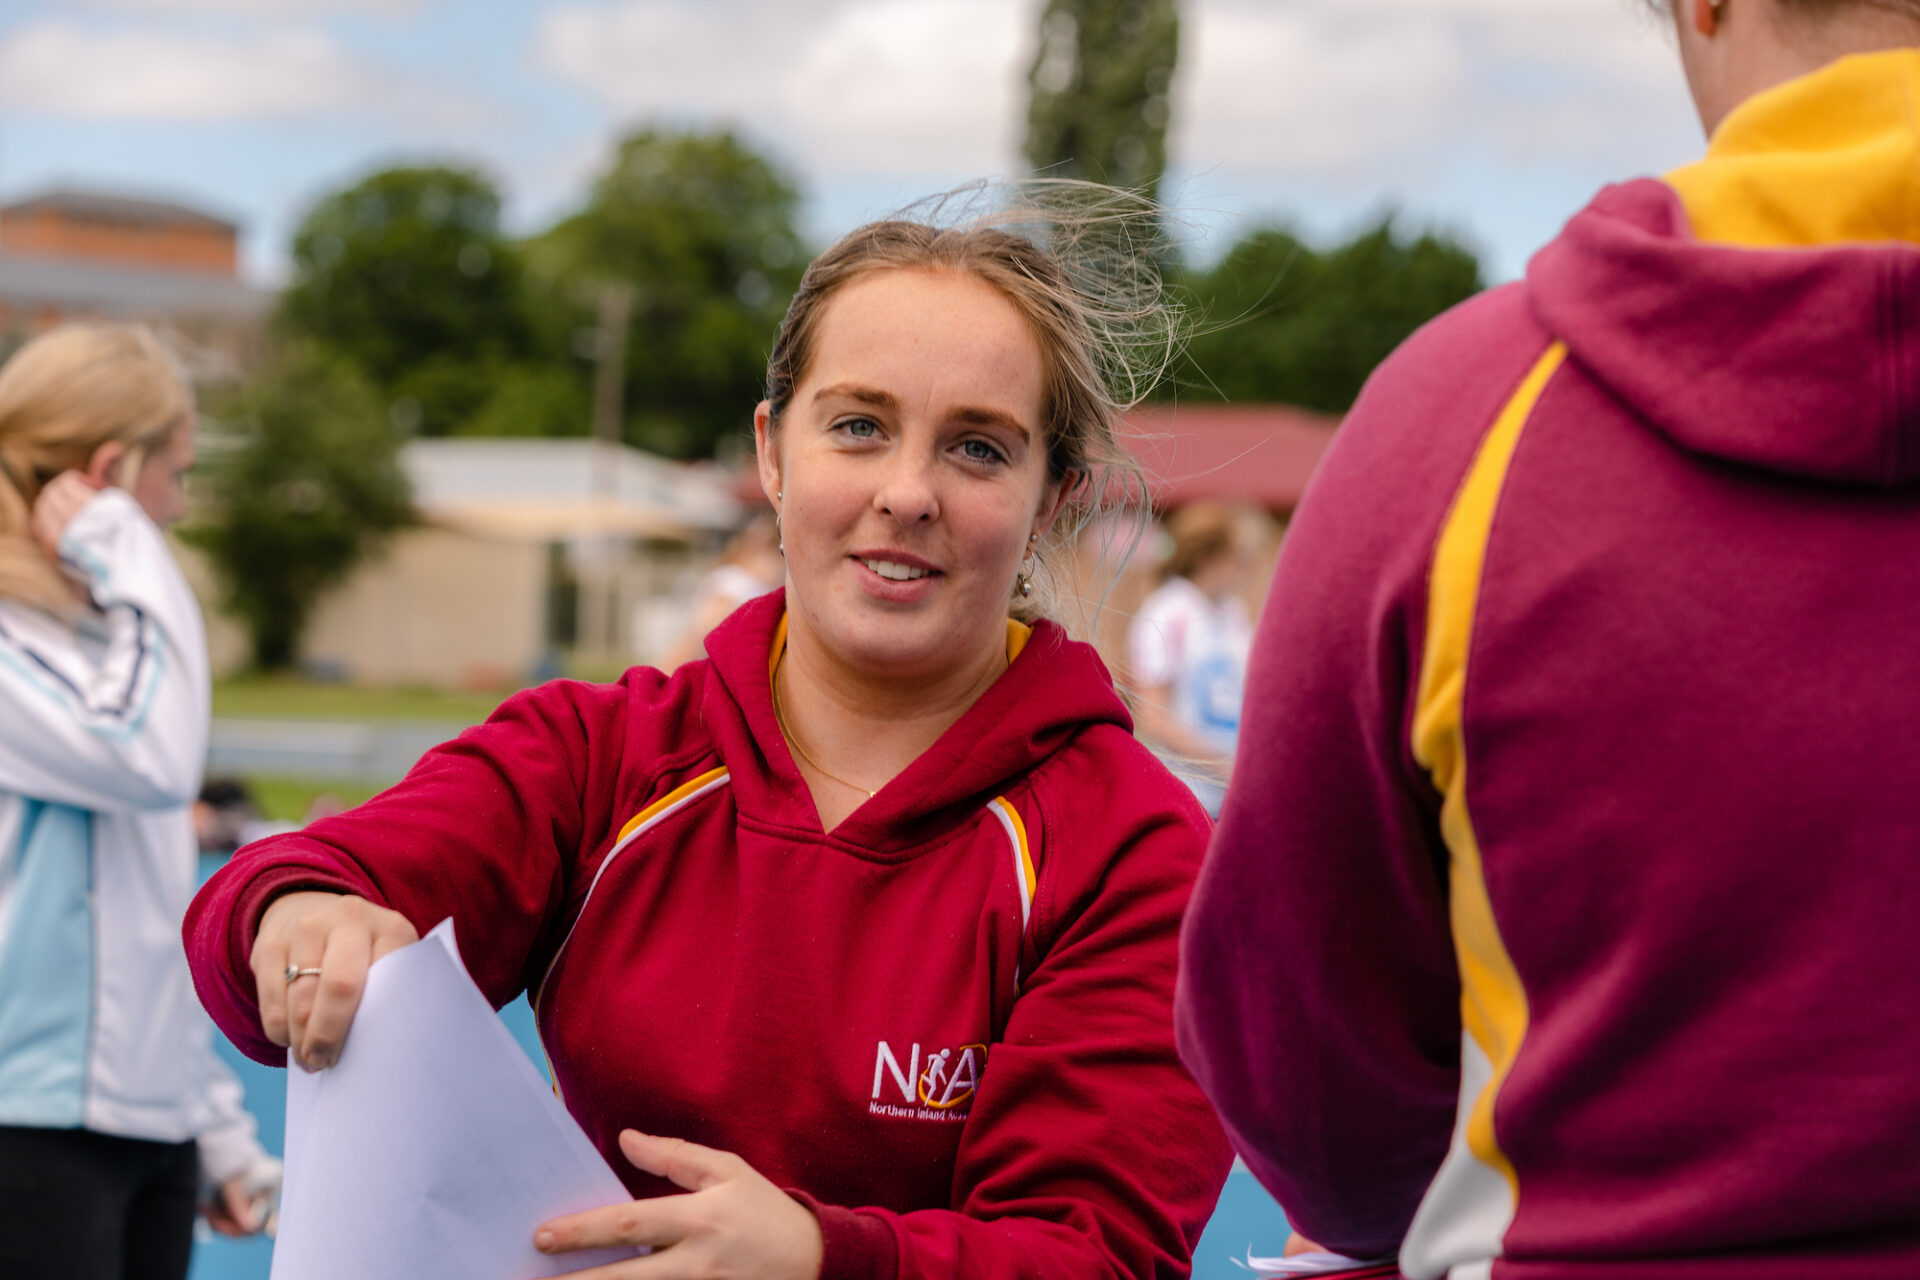 UNE student and NIAS netball coach Sophie Hansen